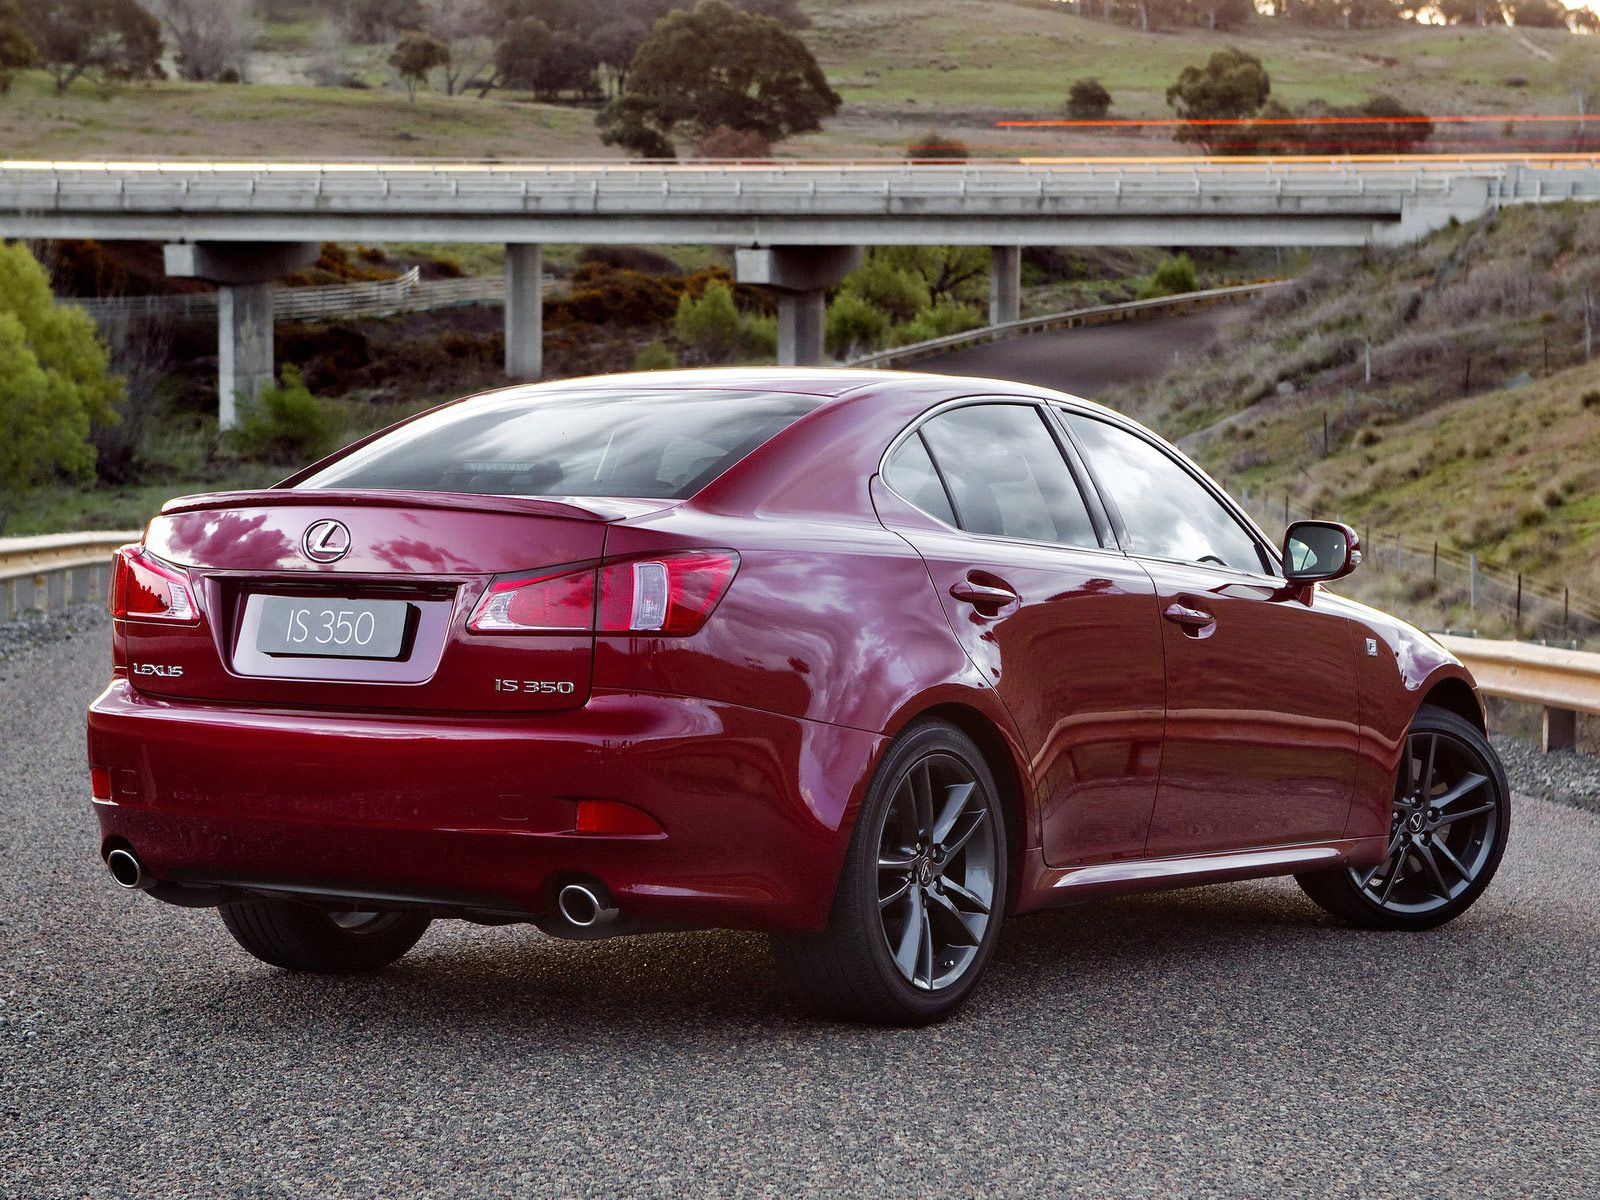 2011 LEXUS IS350F Sport accident lawyers info pictures